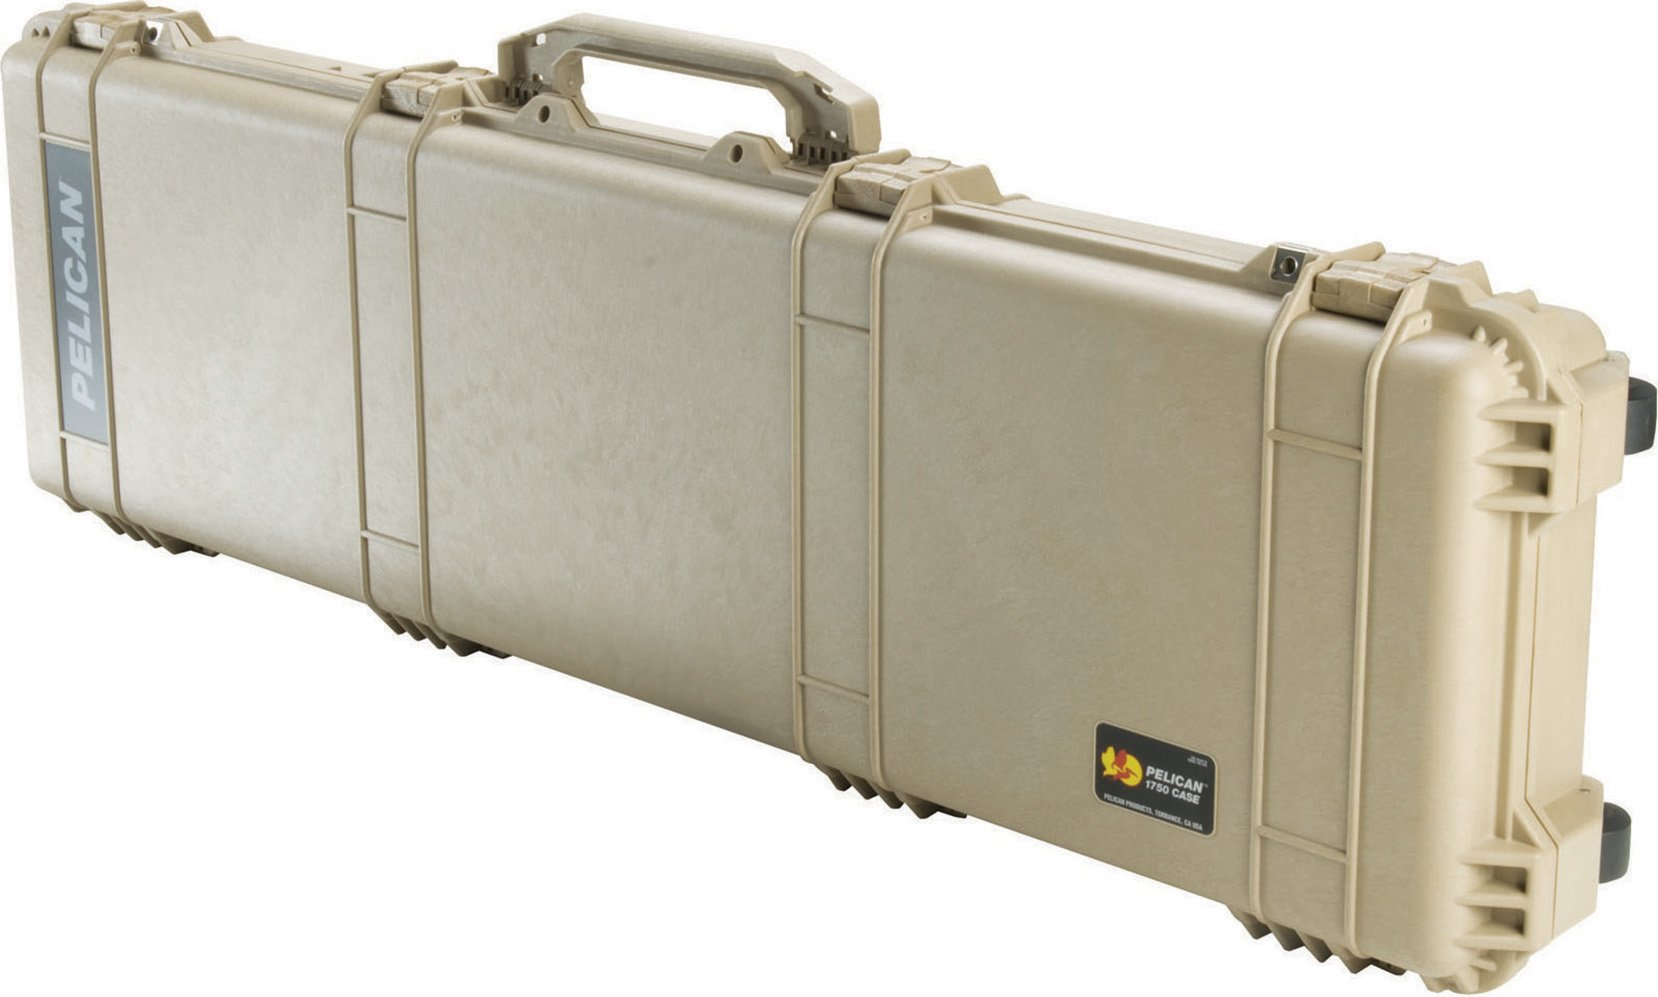 Pelican 1750 Rifle Case With Foam (Desert Tan) by Pelican (Image #1)